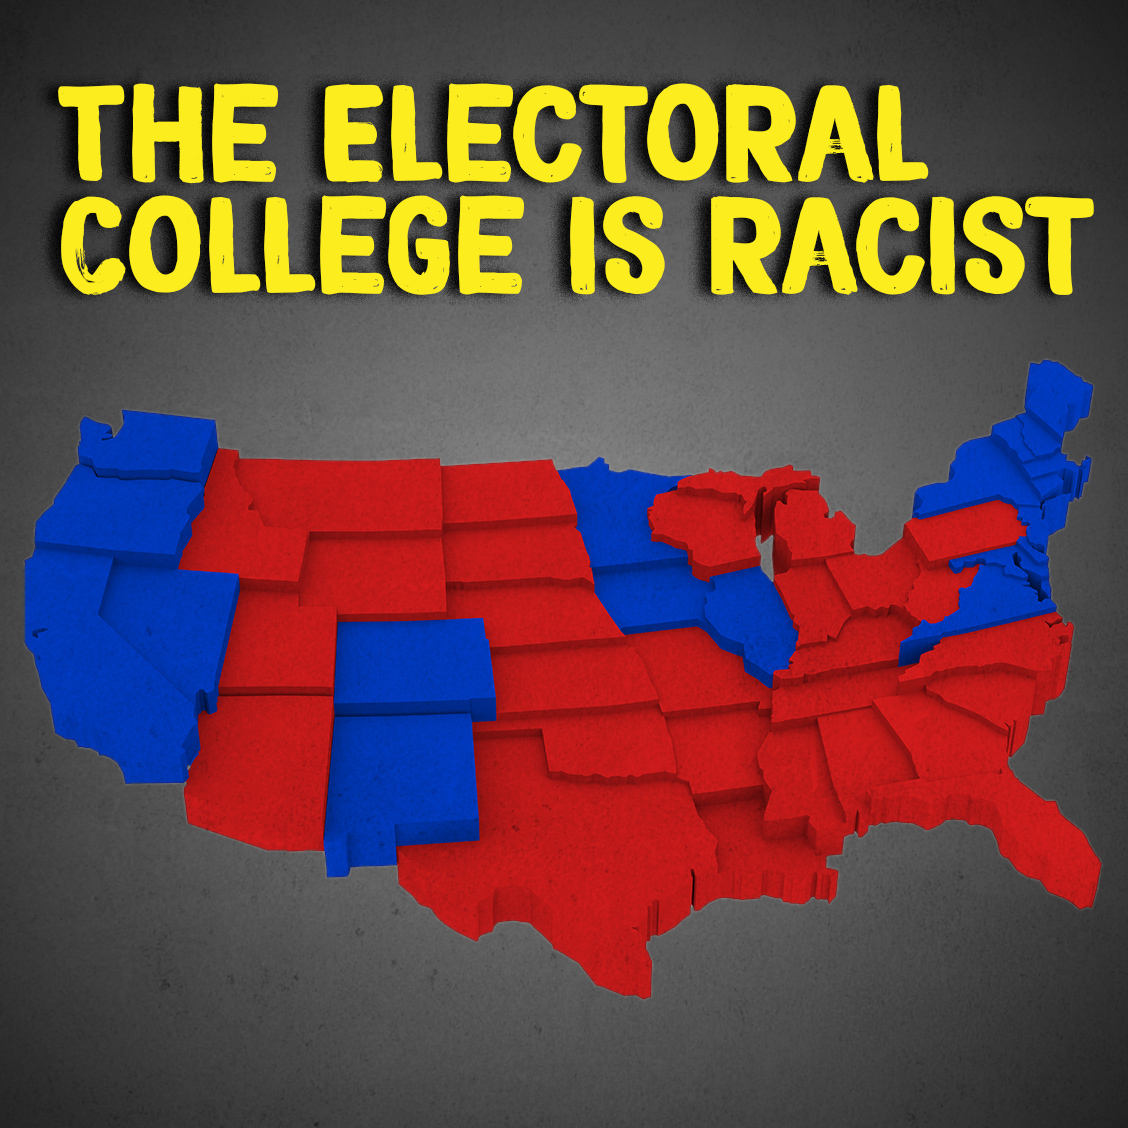 Wyoming is 92% white.  California is 37% white.  A Wyoming voter has nearly 4x more influence than a California voter.  The Electoral College is racist. It must be abolished.